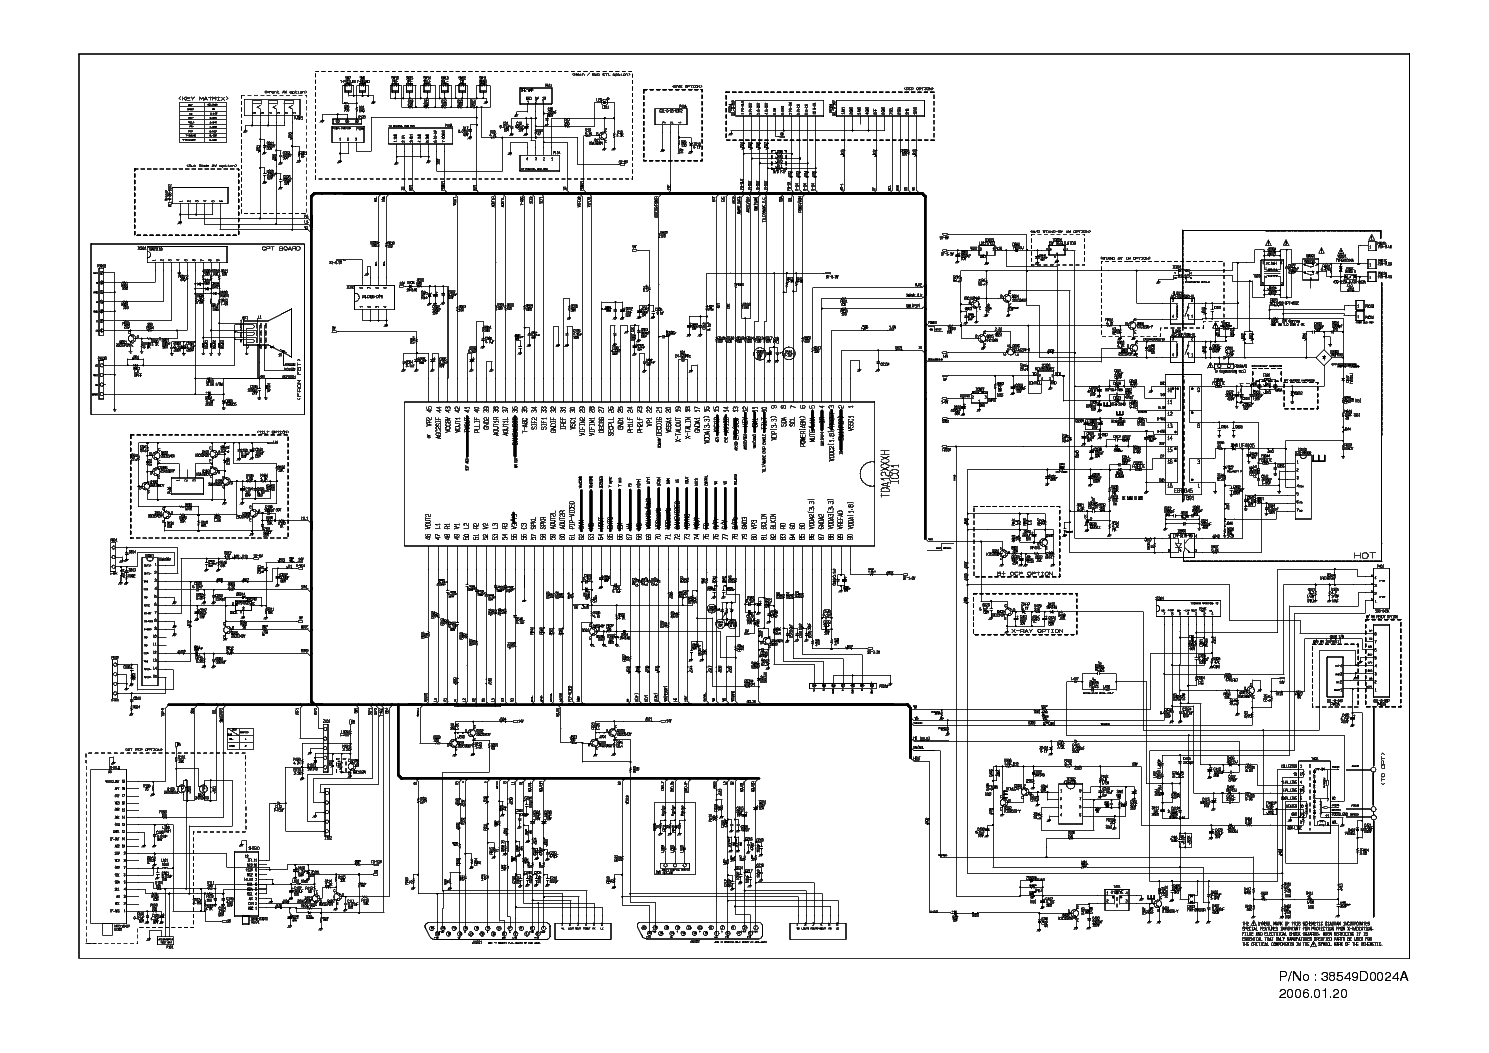 LG CHASSIS CW-62A SCH service manual (1st page)